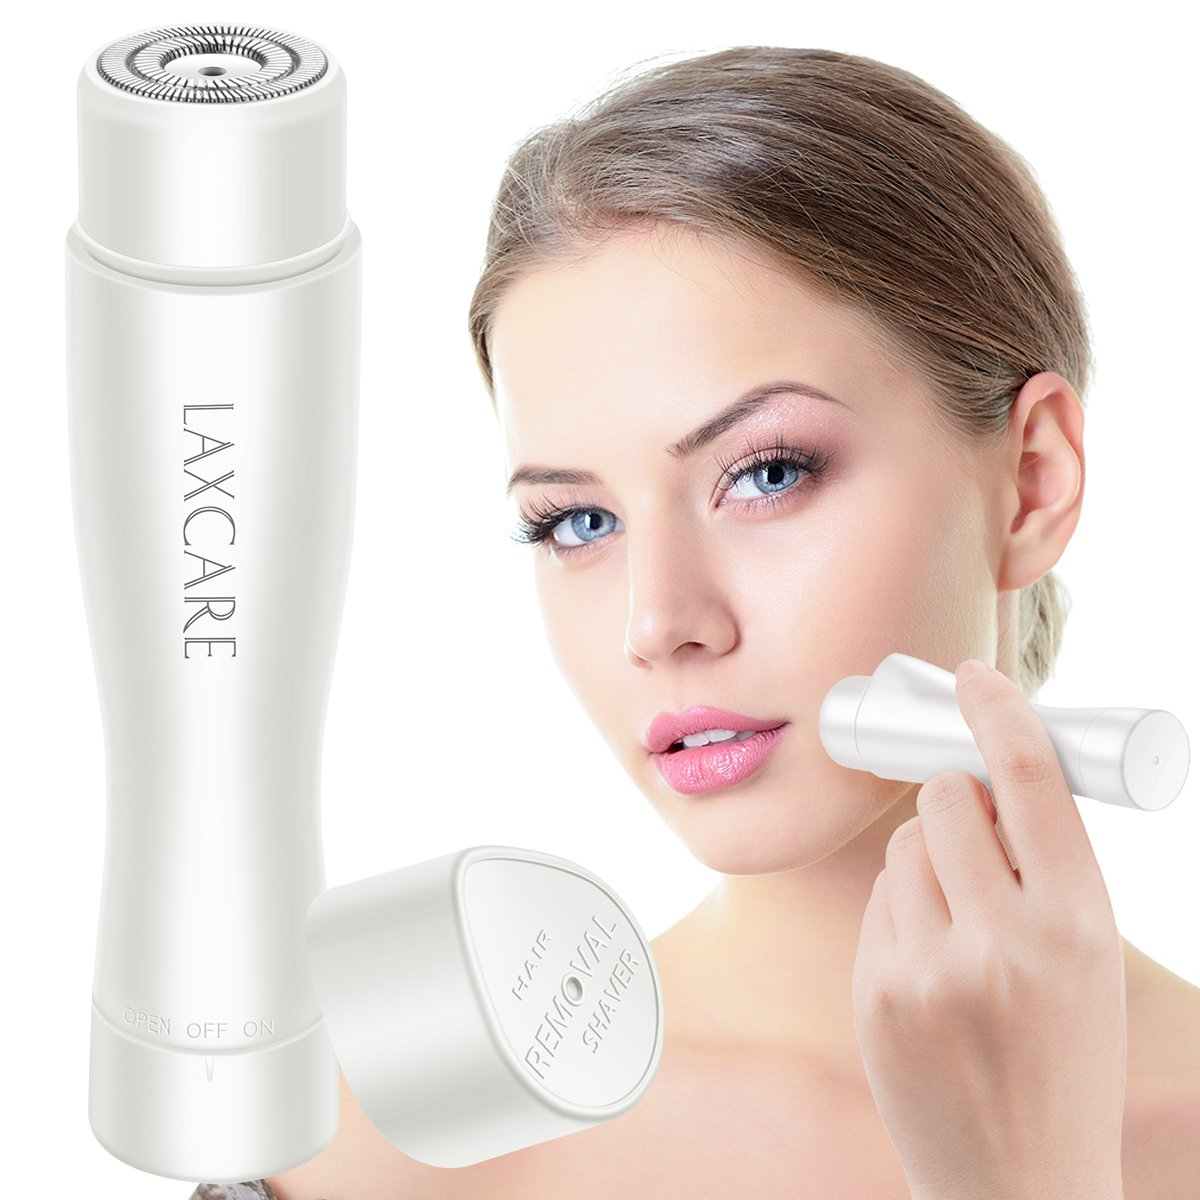 Facial Hair Removal for Women, Laxcare Painless Flawless Hair Remover Waterproof with Built-in LED Light (White)